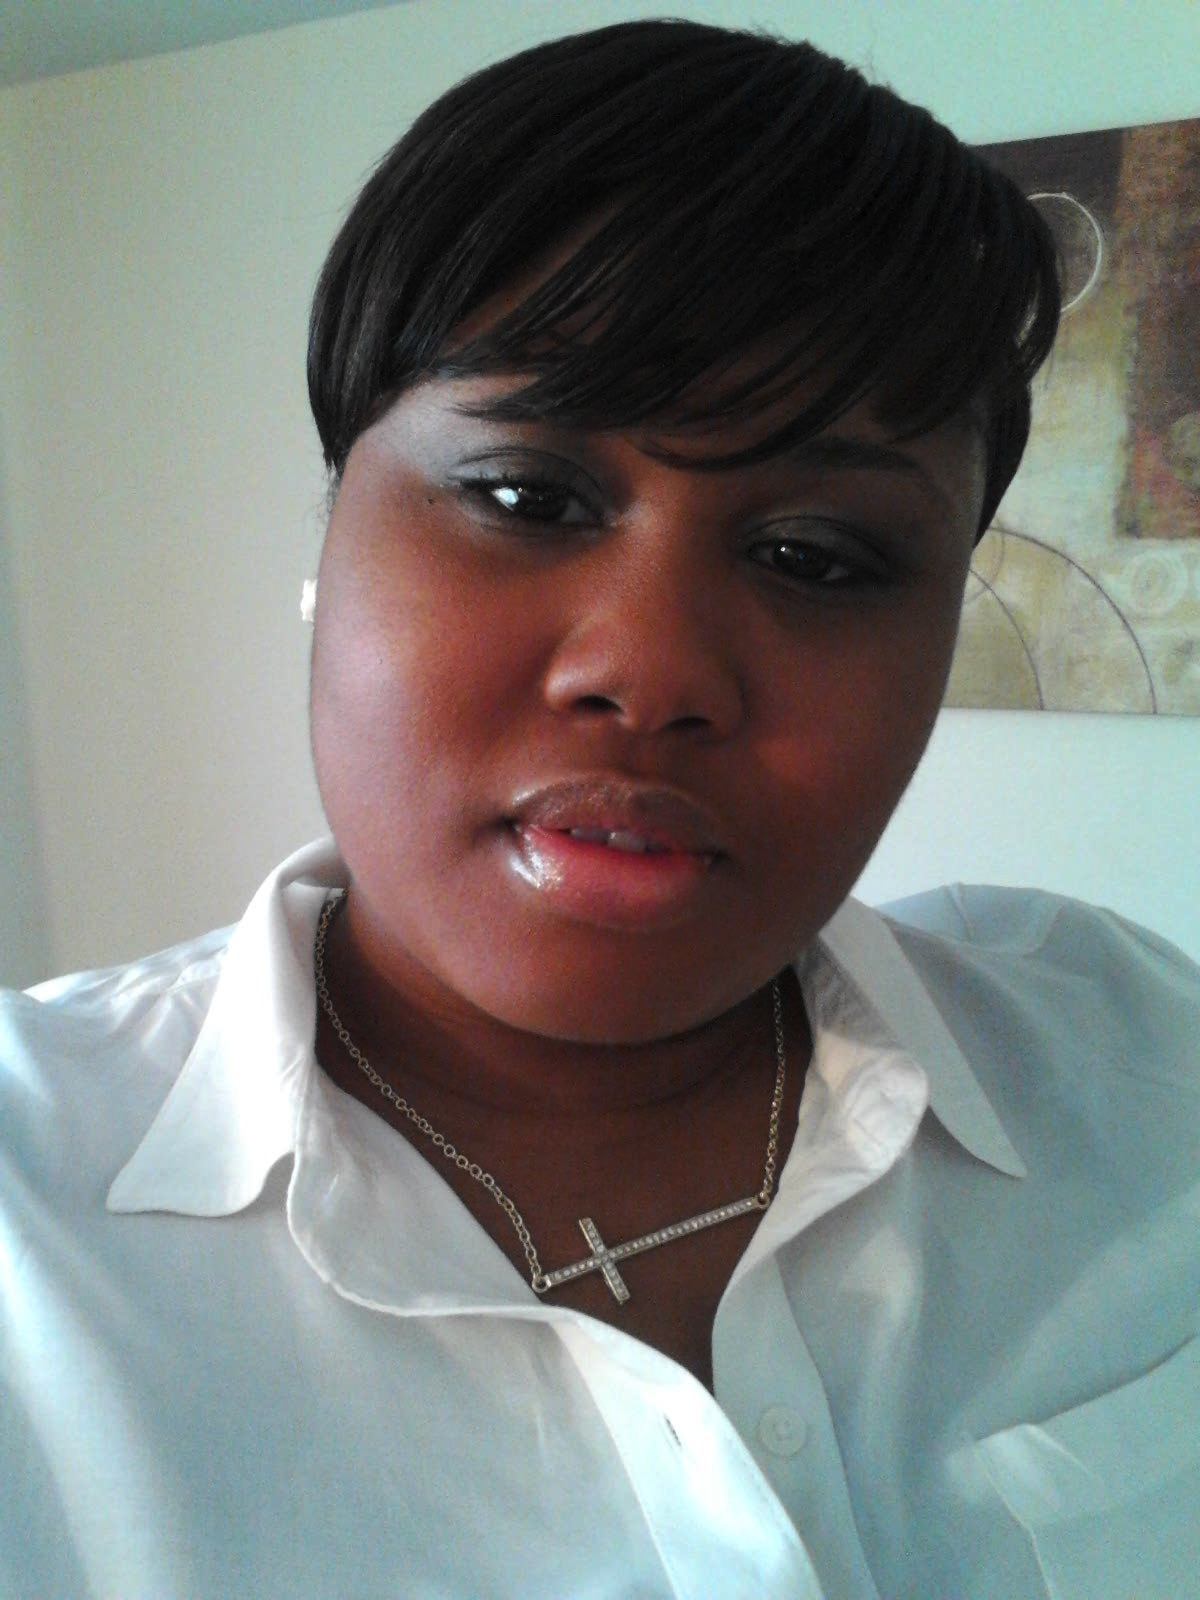 cds monarch 2013 alexis bell has been a support specialist for the community habilitation program since 2008 throughout her years she has worked many different